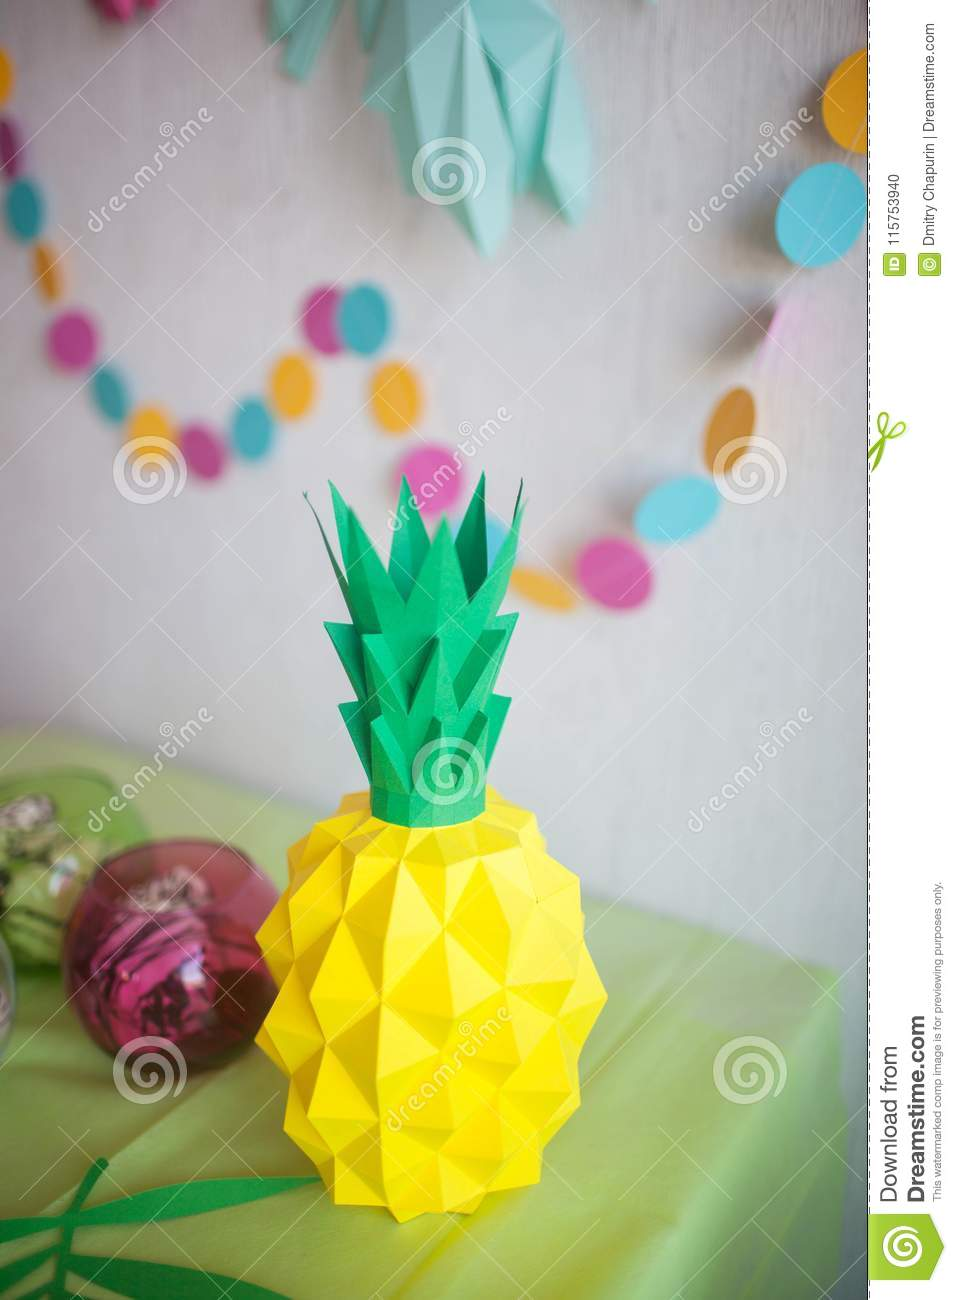 Origami Pineapple From Colored Paper Stock Photo Image Of Blue